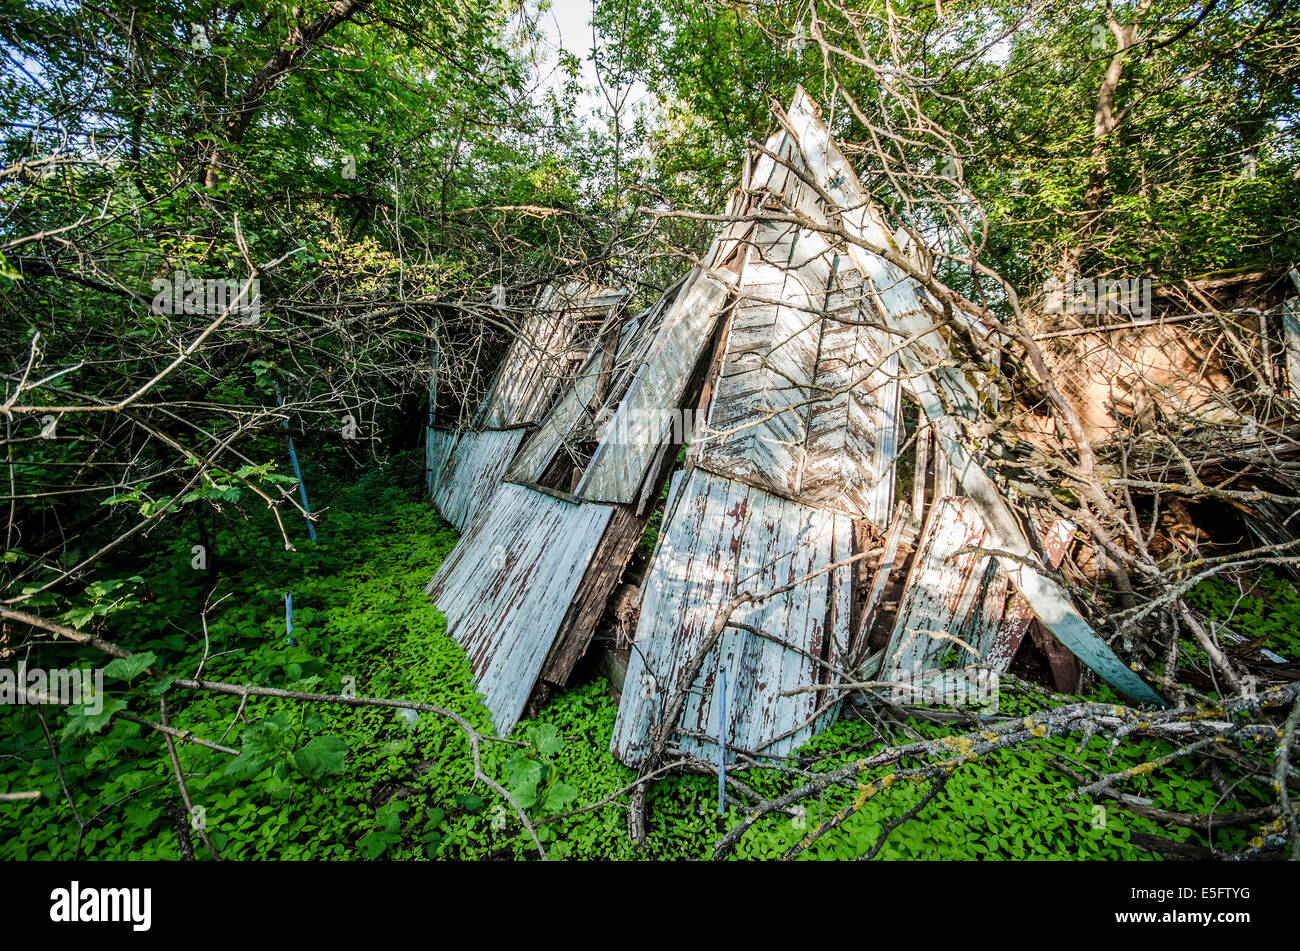 Pripyat ghost town in the Chernobyl exclusion zone, Ukraine - Stock Image